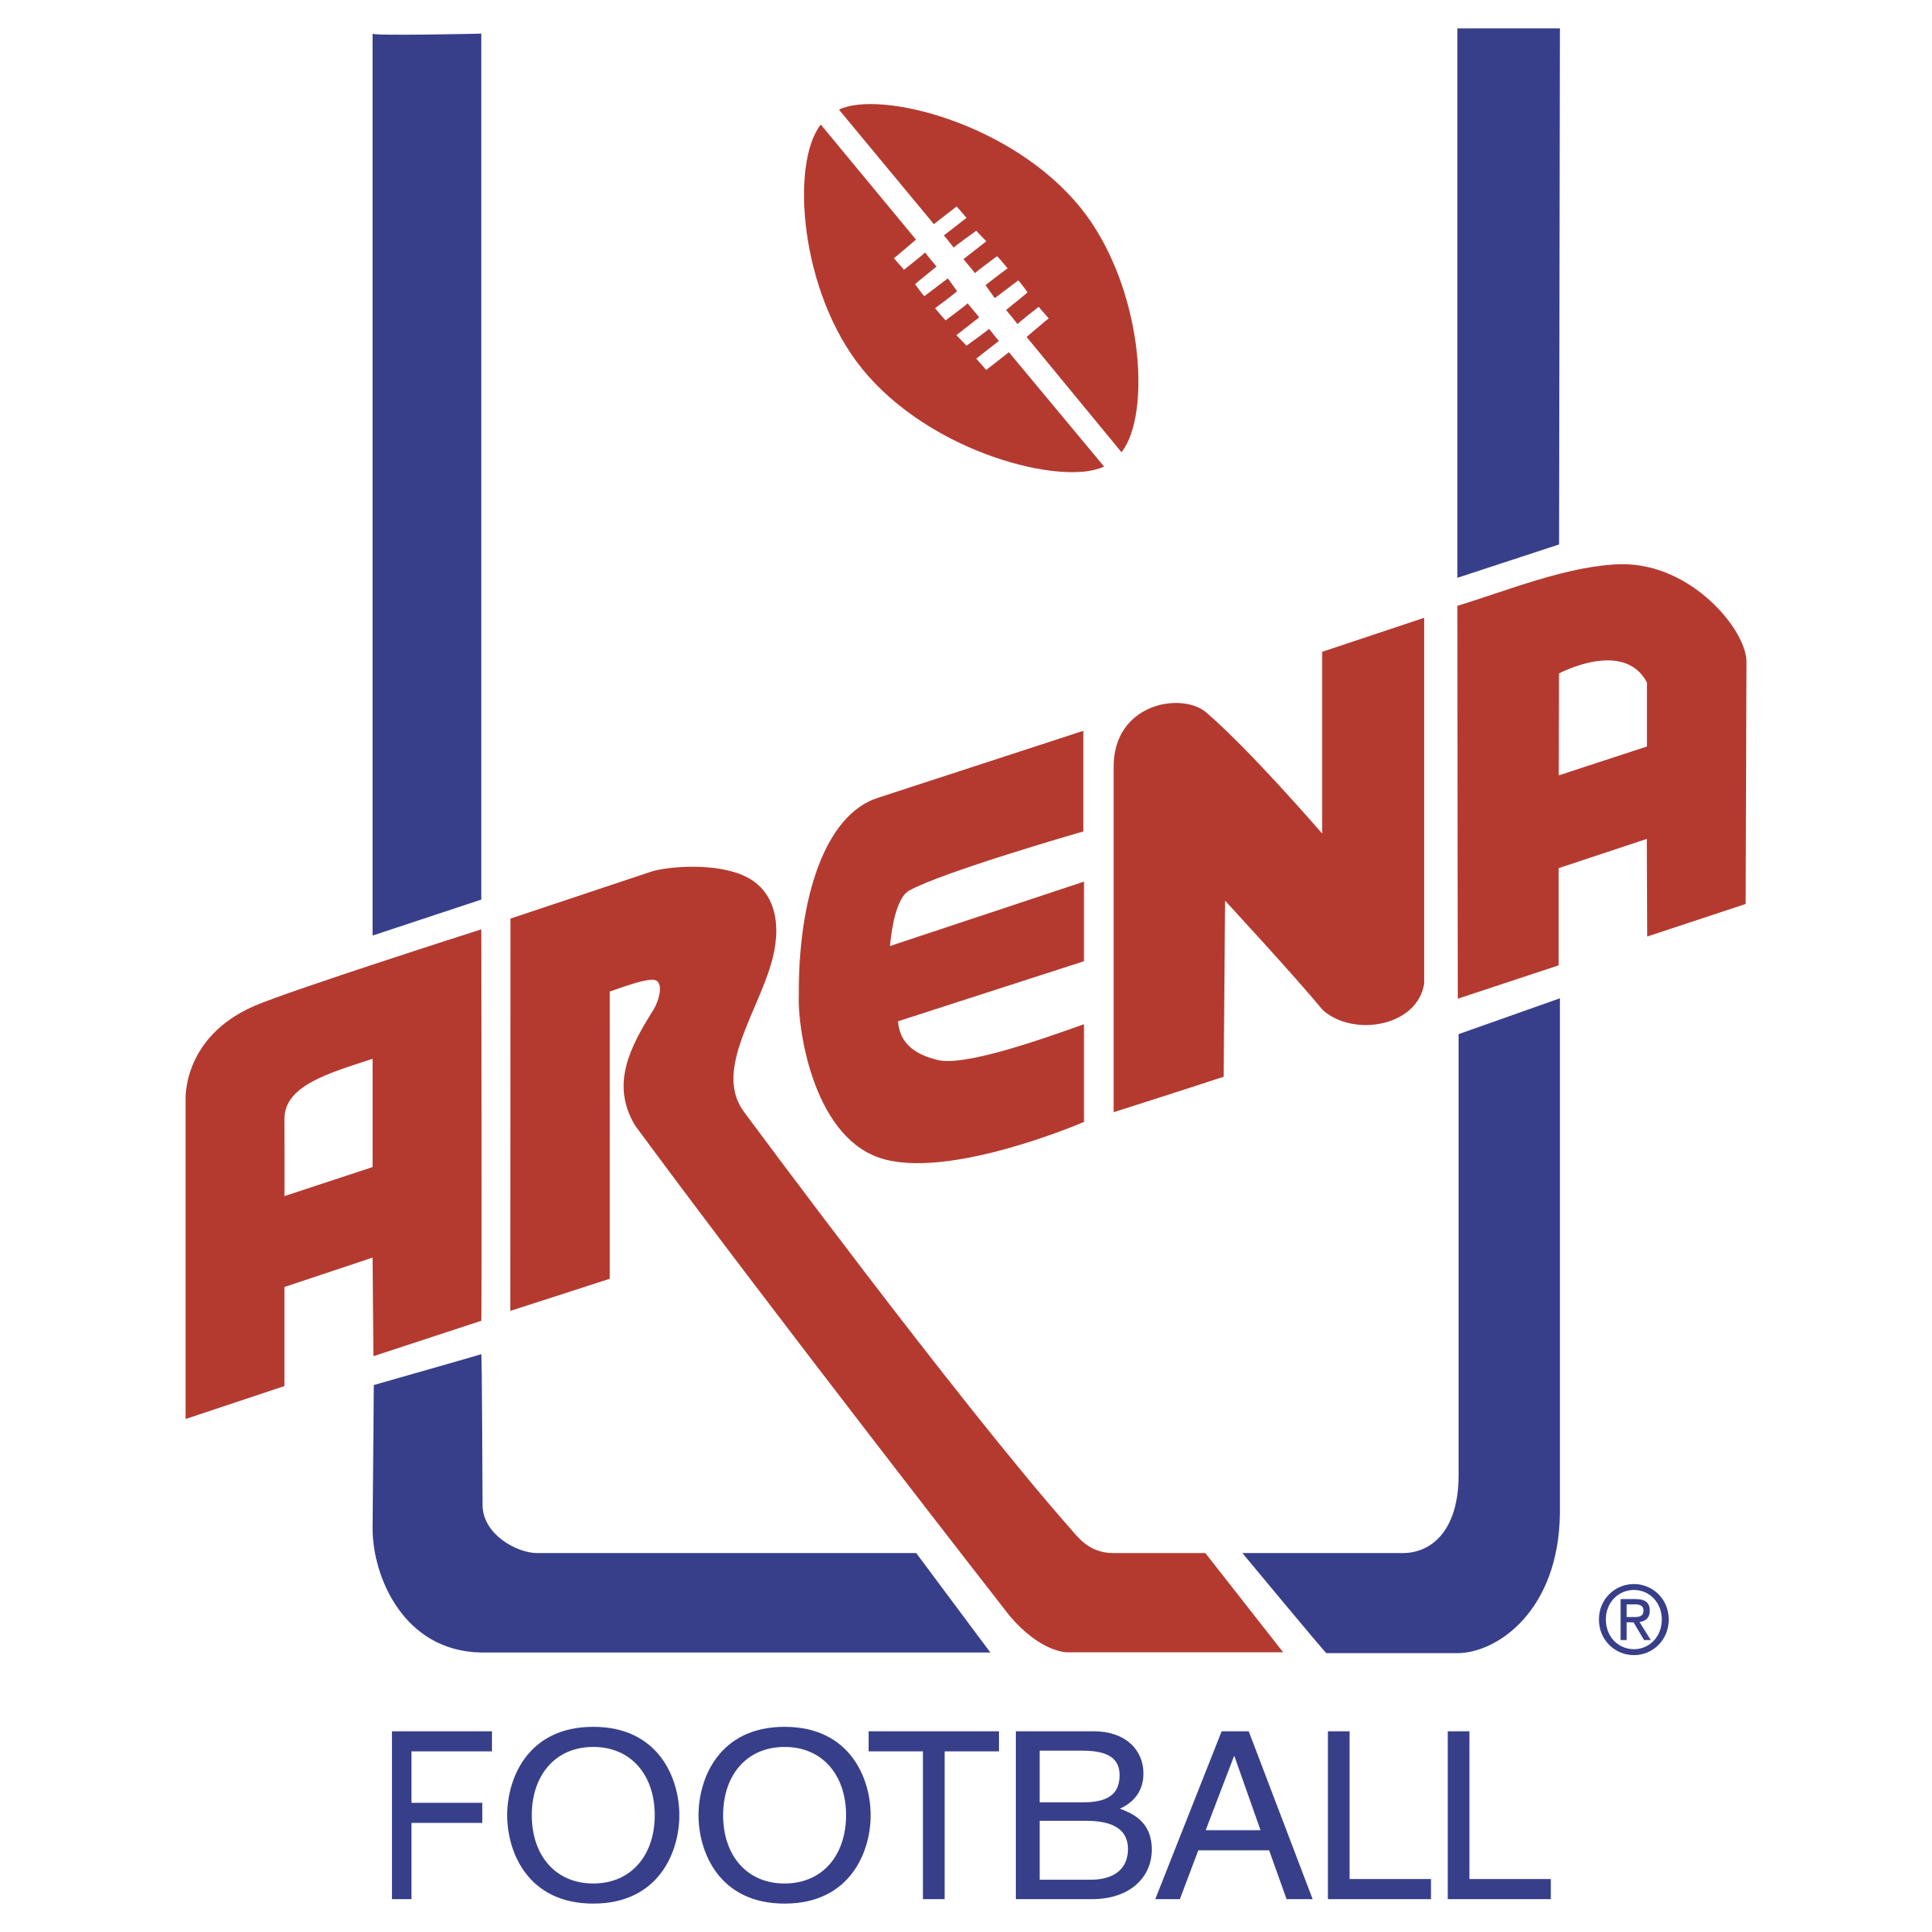 arena-football-league-logo-png-transparent.png